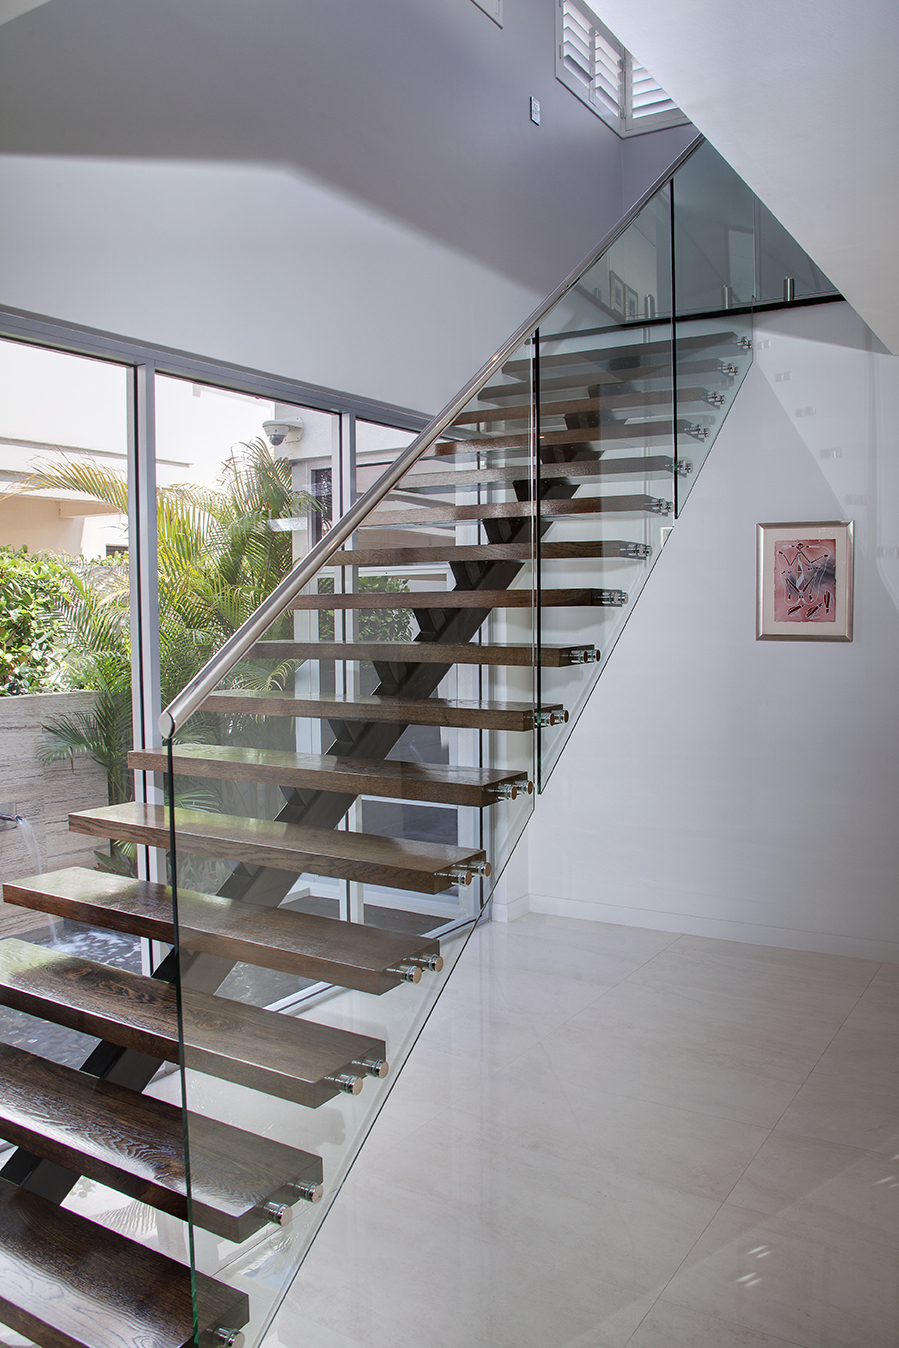 Stairs And Balustarde Railings Stair Glass Donegal Glass